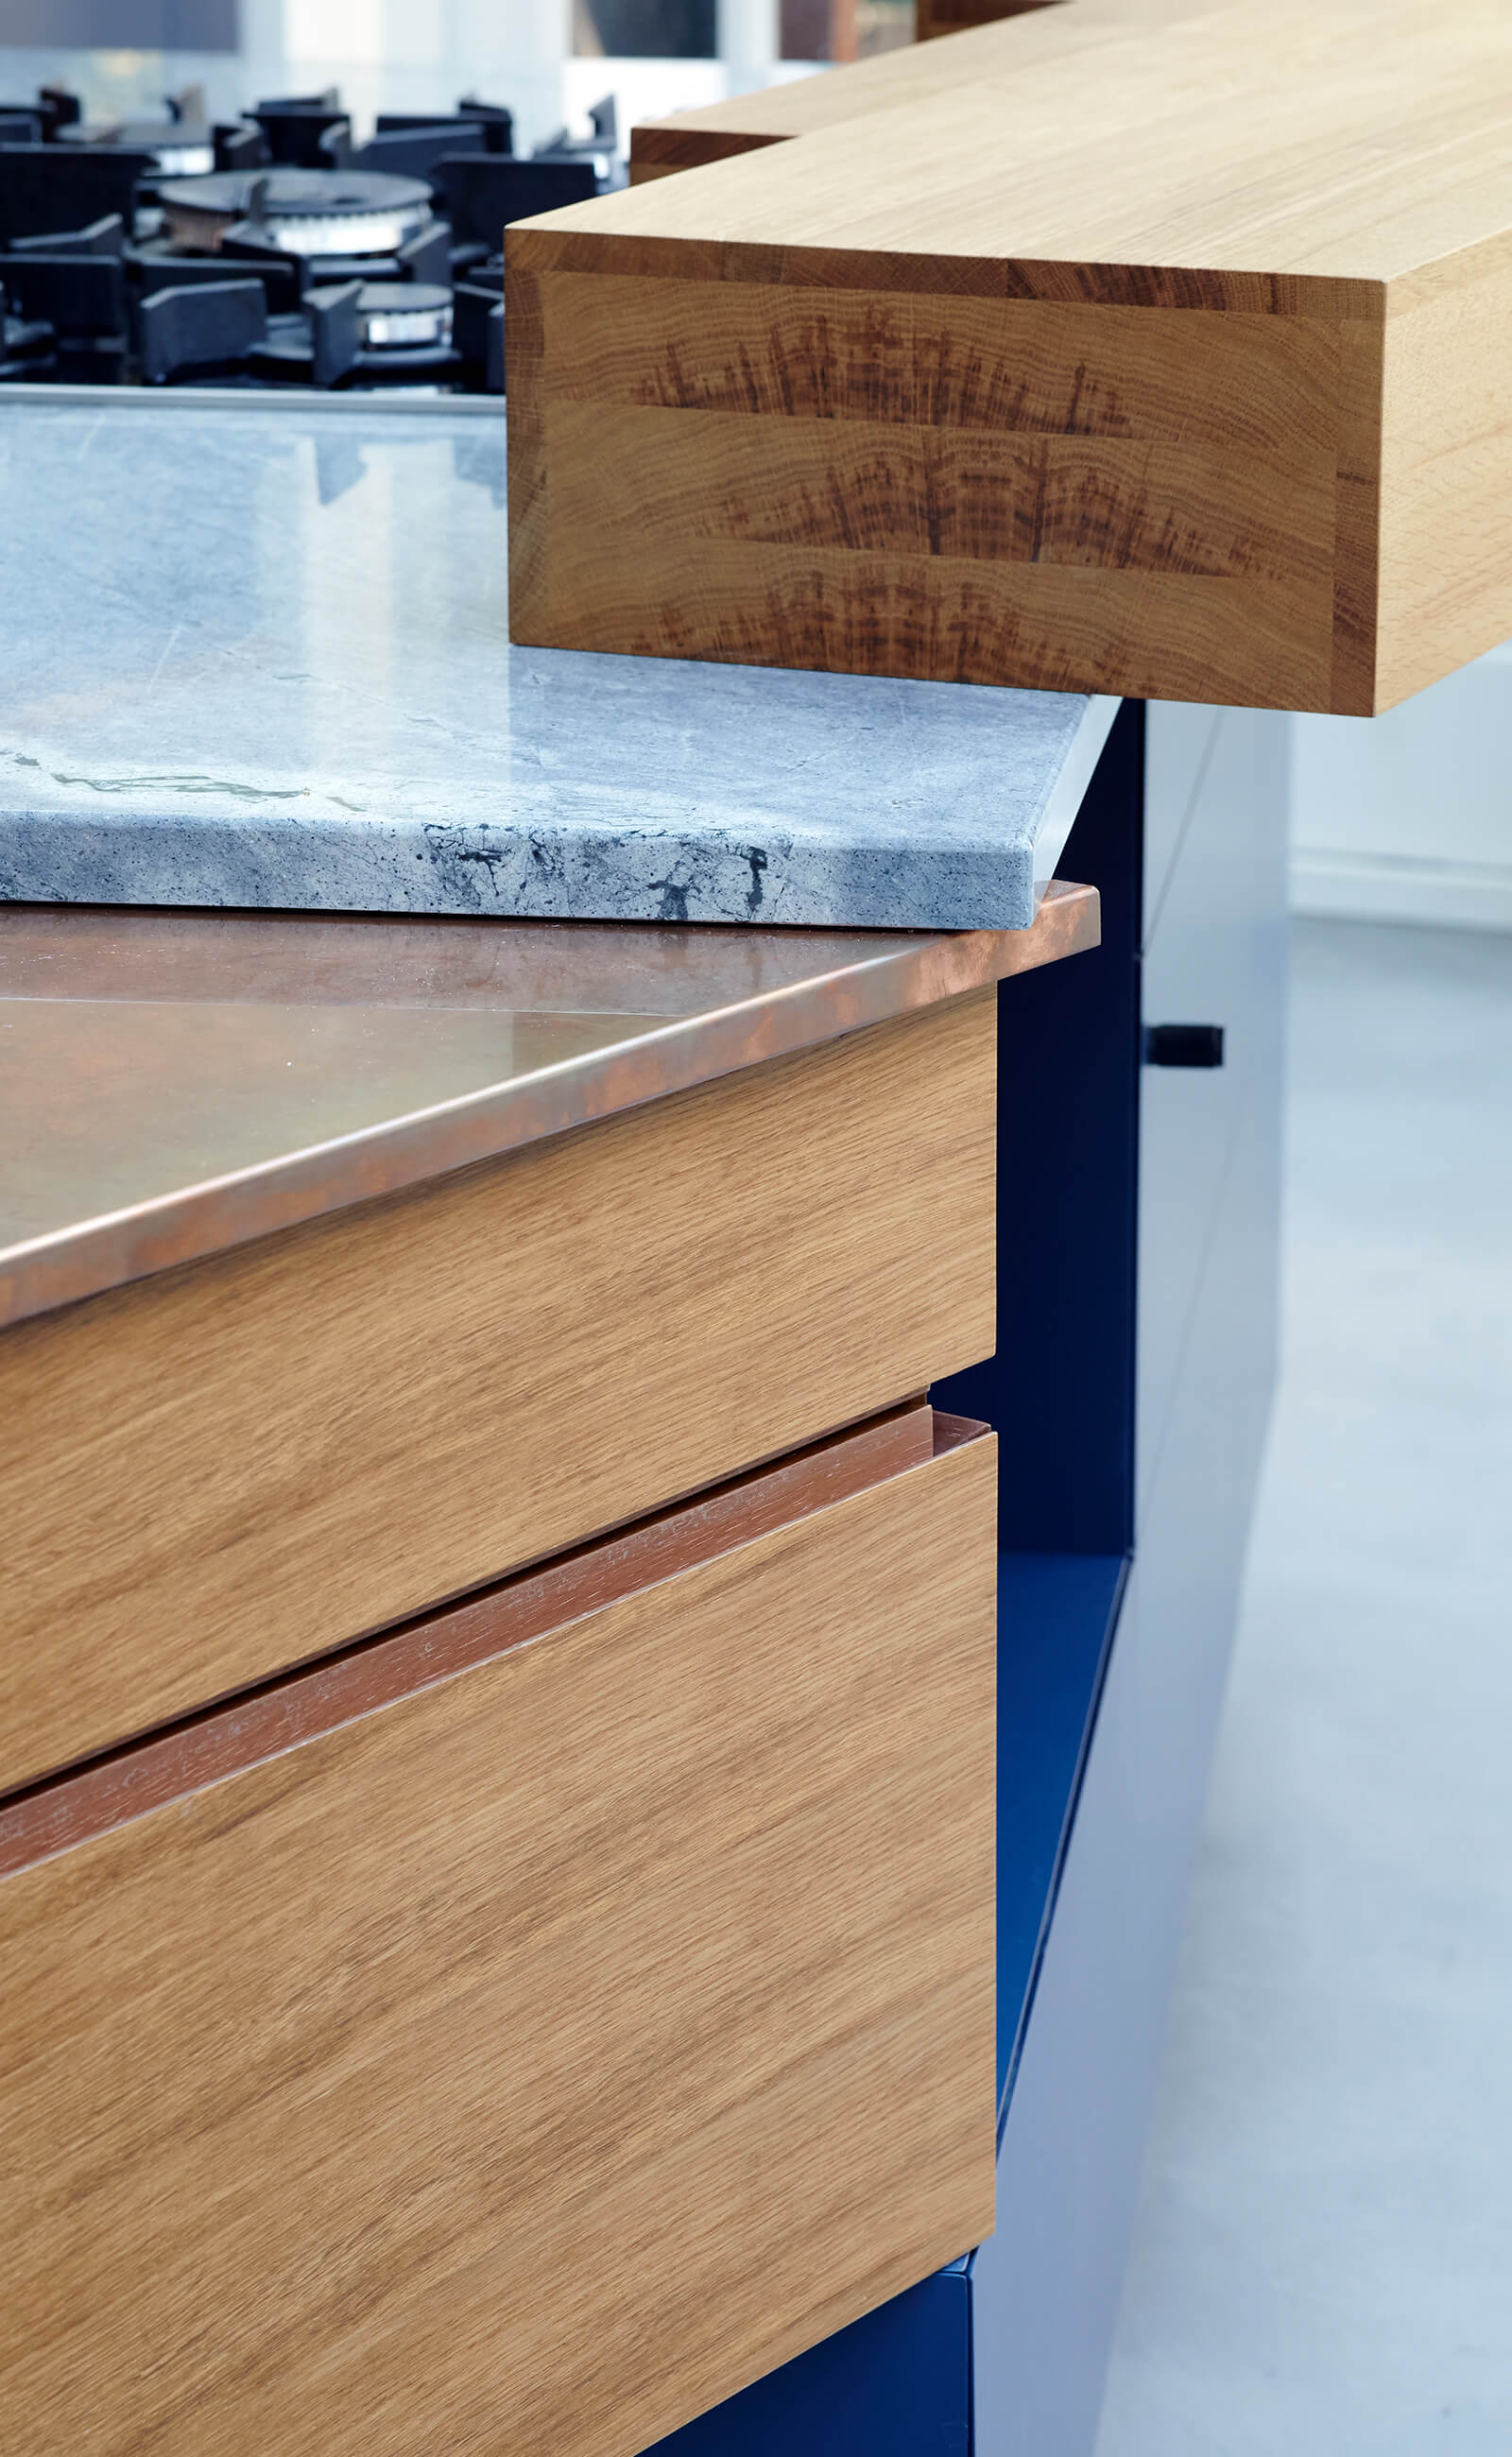 Counter top details in marble and copper with clever storage below